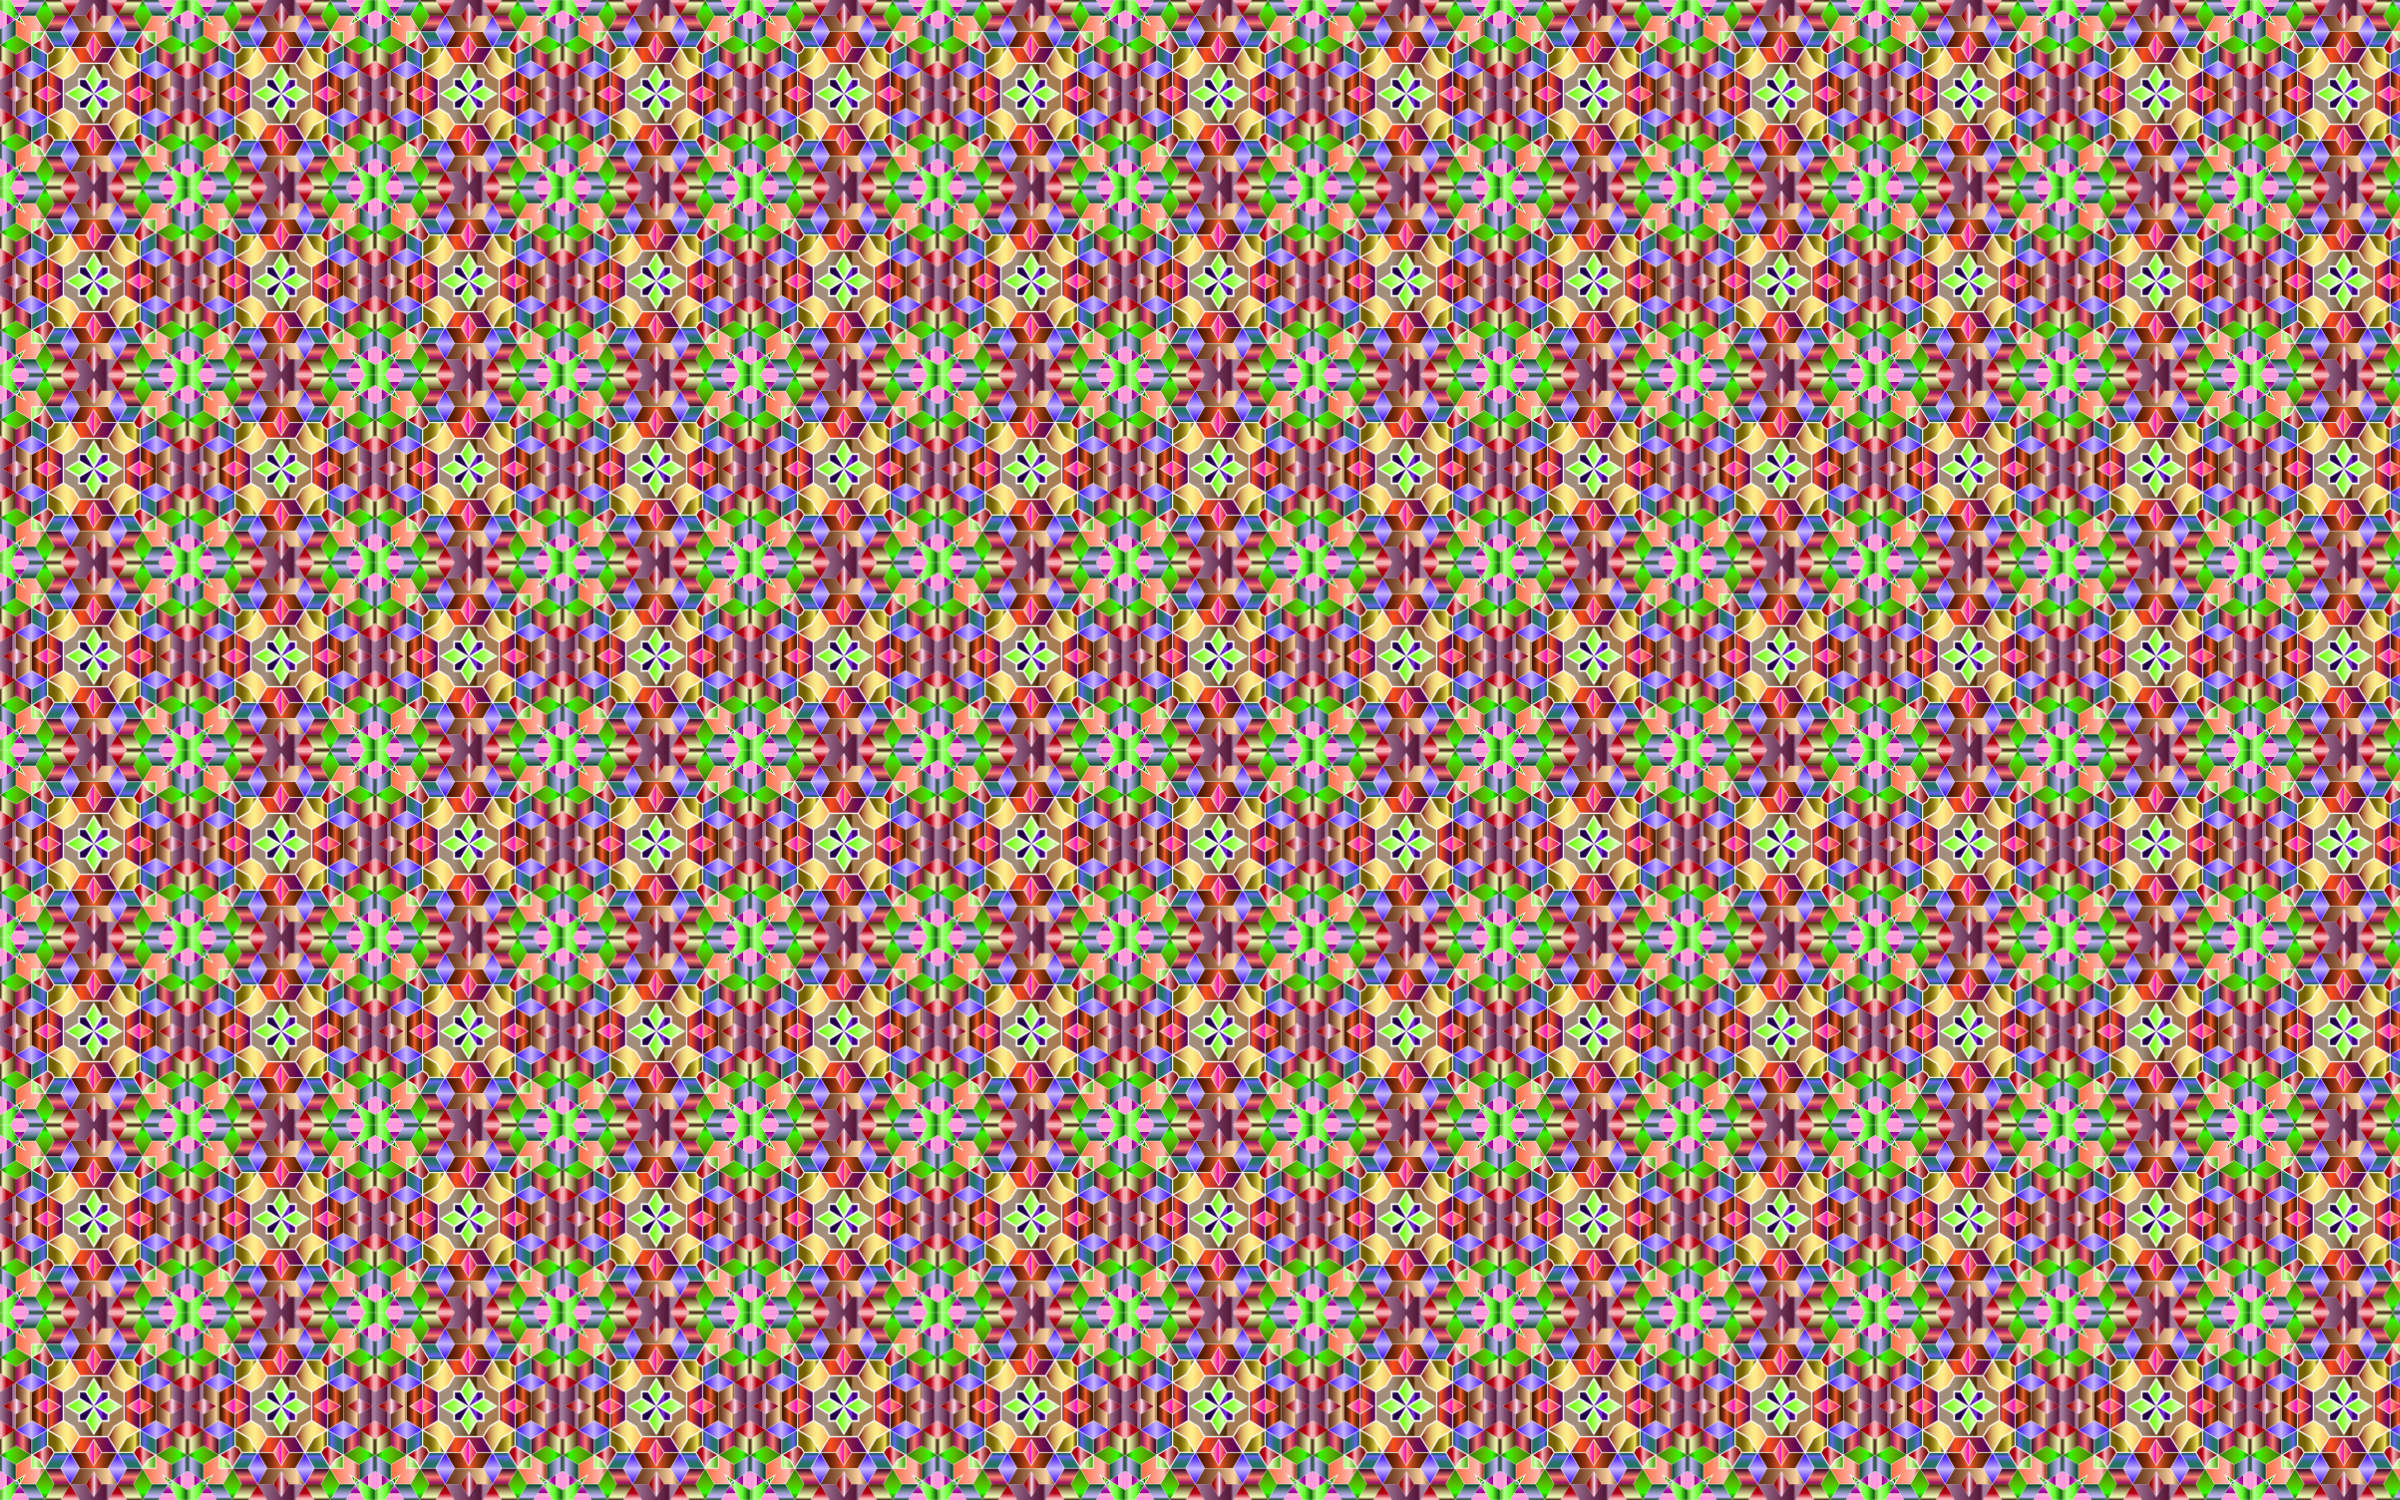 Seamless Cubic Chromaticity Pattern by GDJ